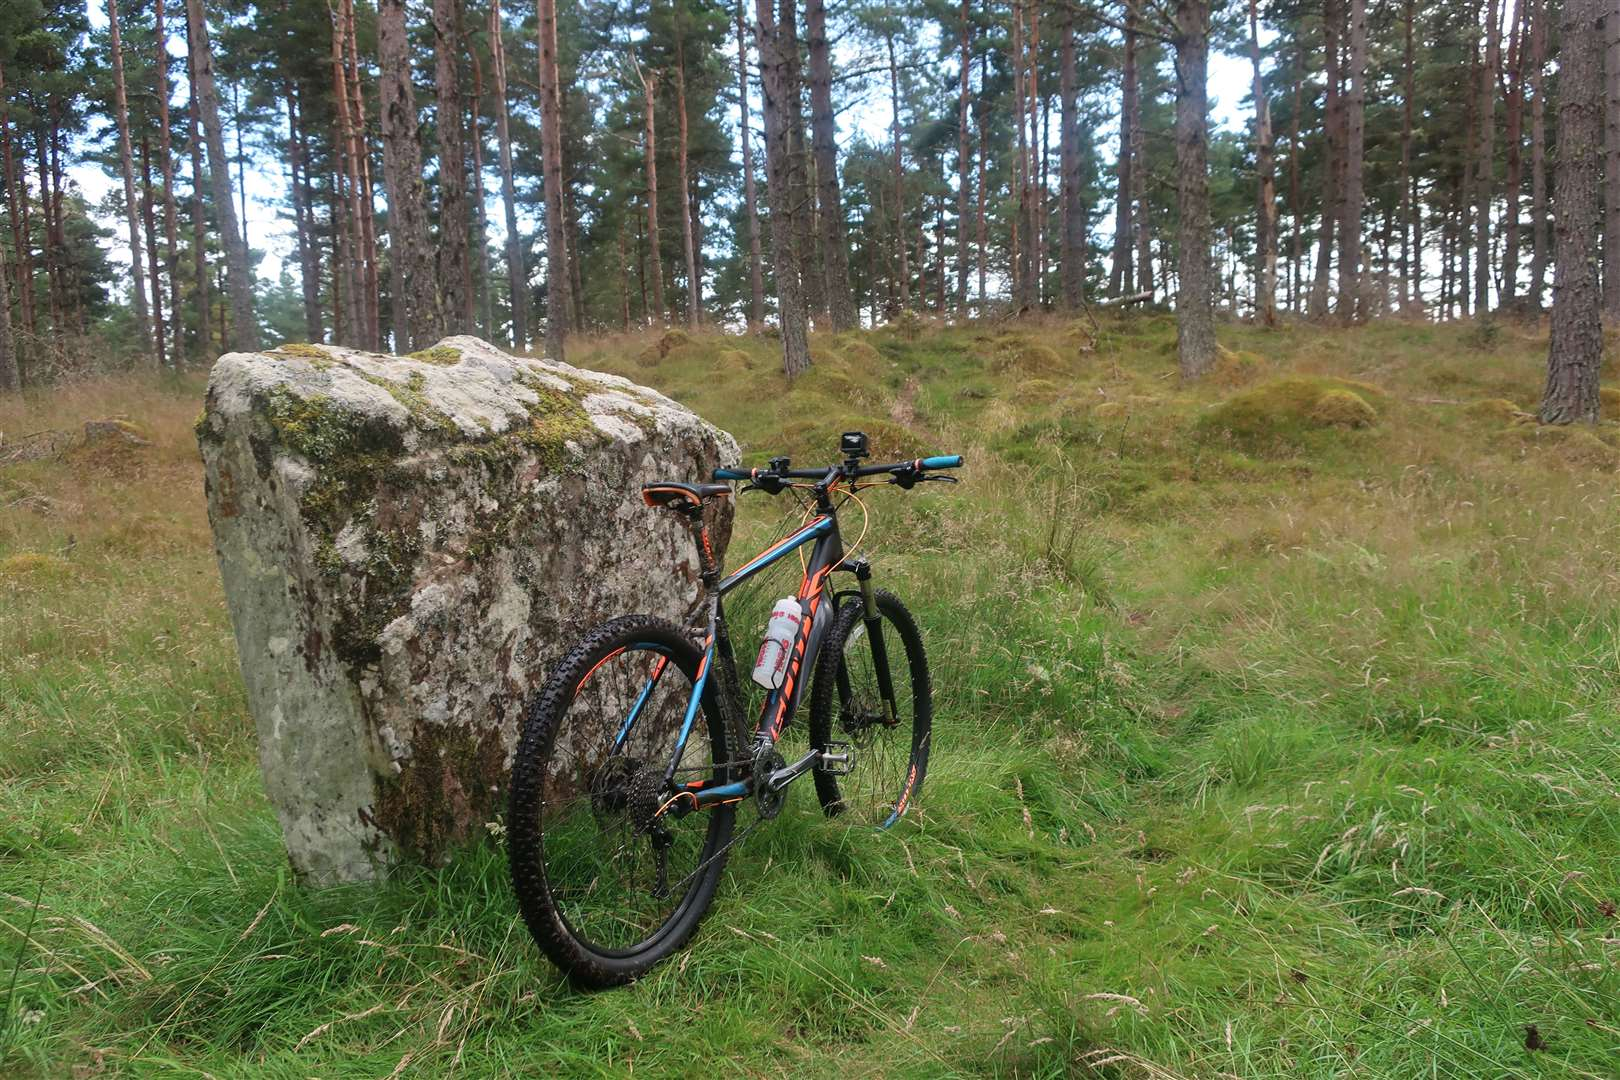 A standing stone beside the singletrack trail.